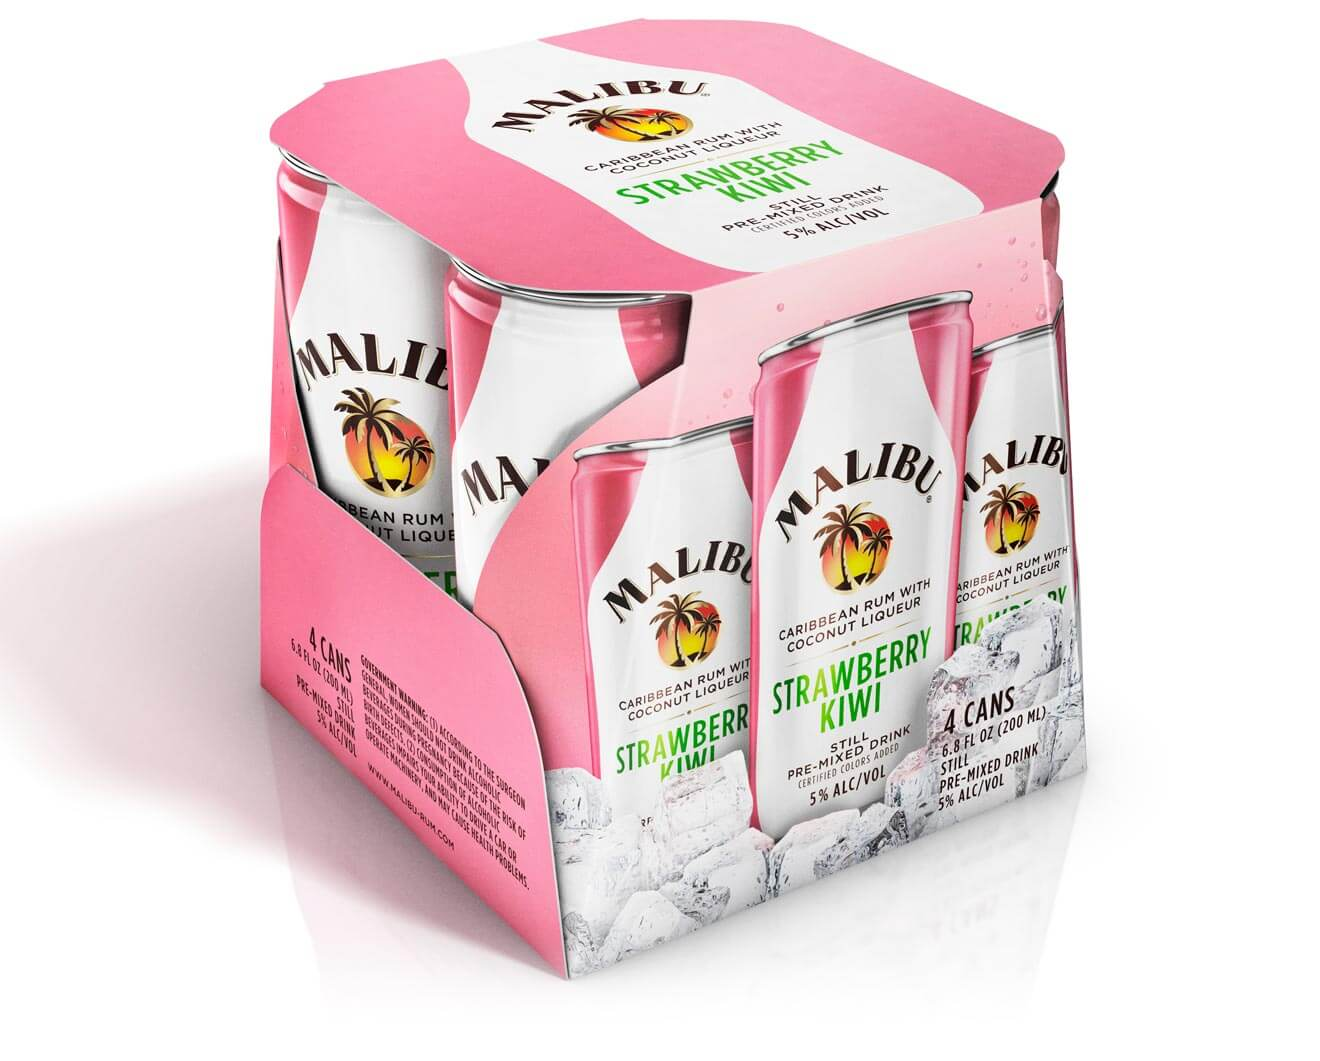 Strawberry Kiwi in a Can from Malibu 4pk, featured brands